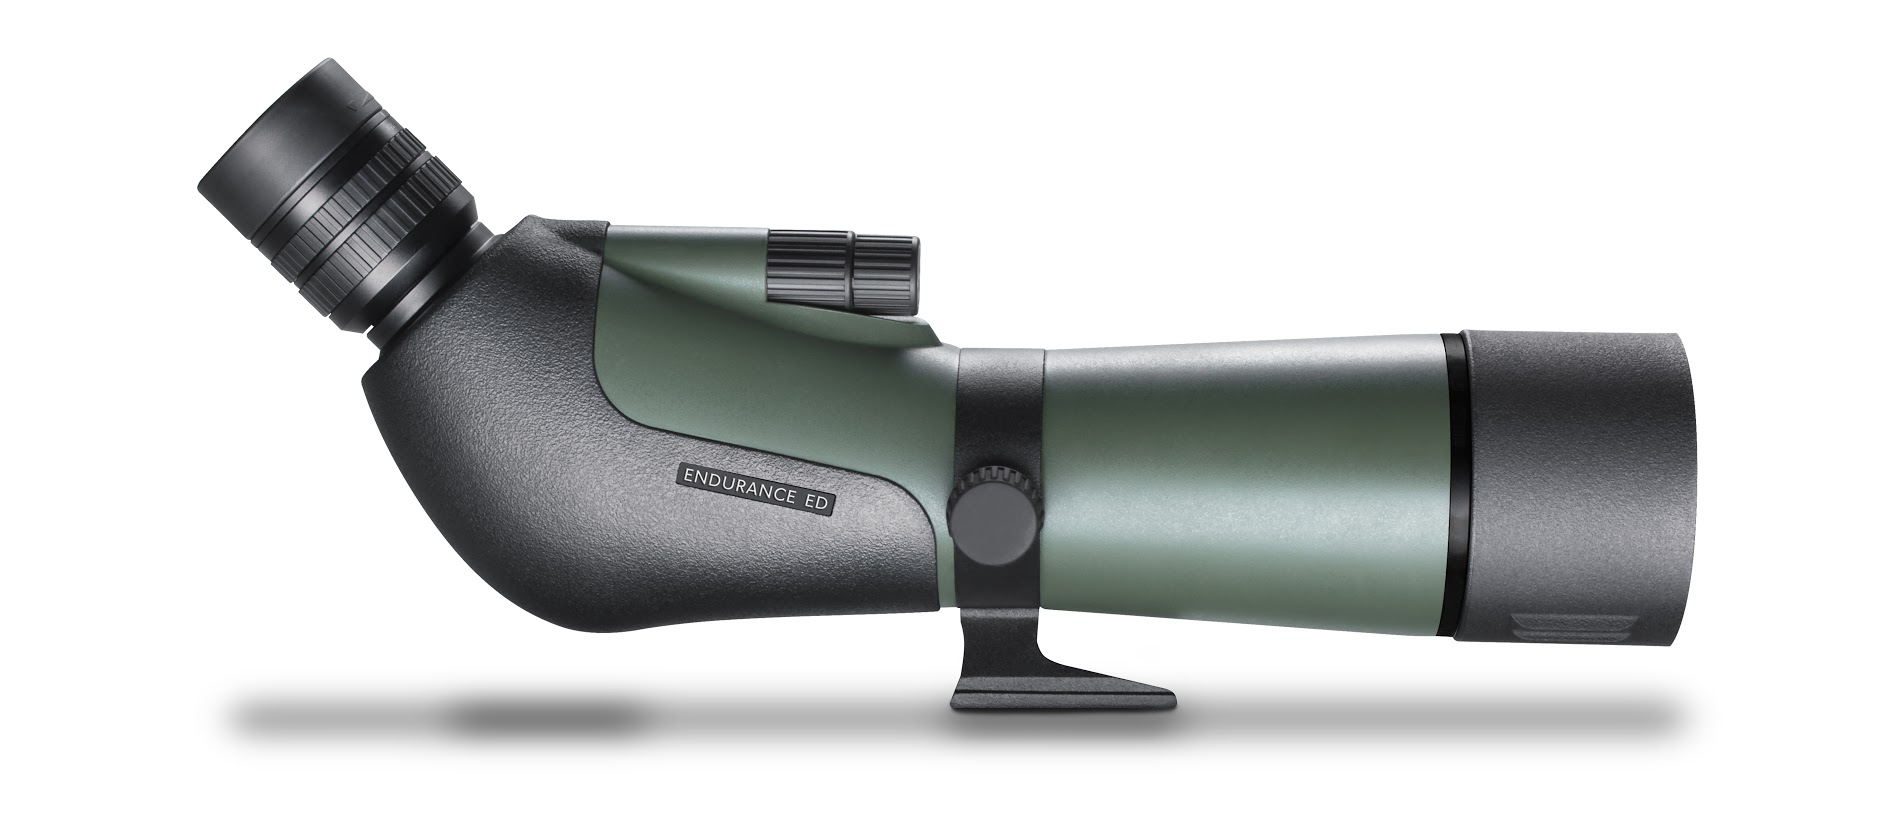 Hawke Endurance ED 16-48×68 Angled Spotting Scope